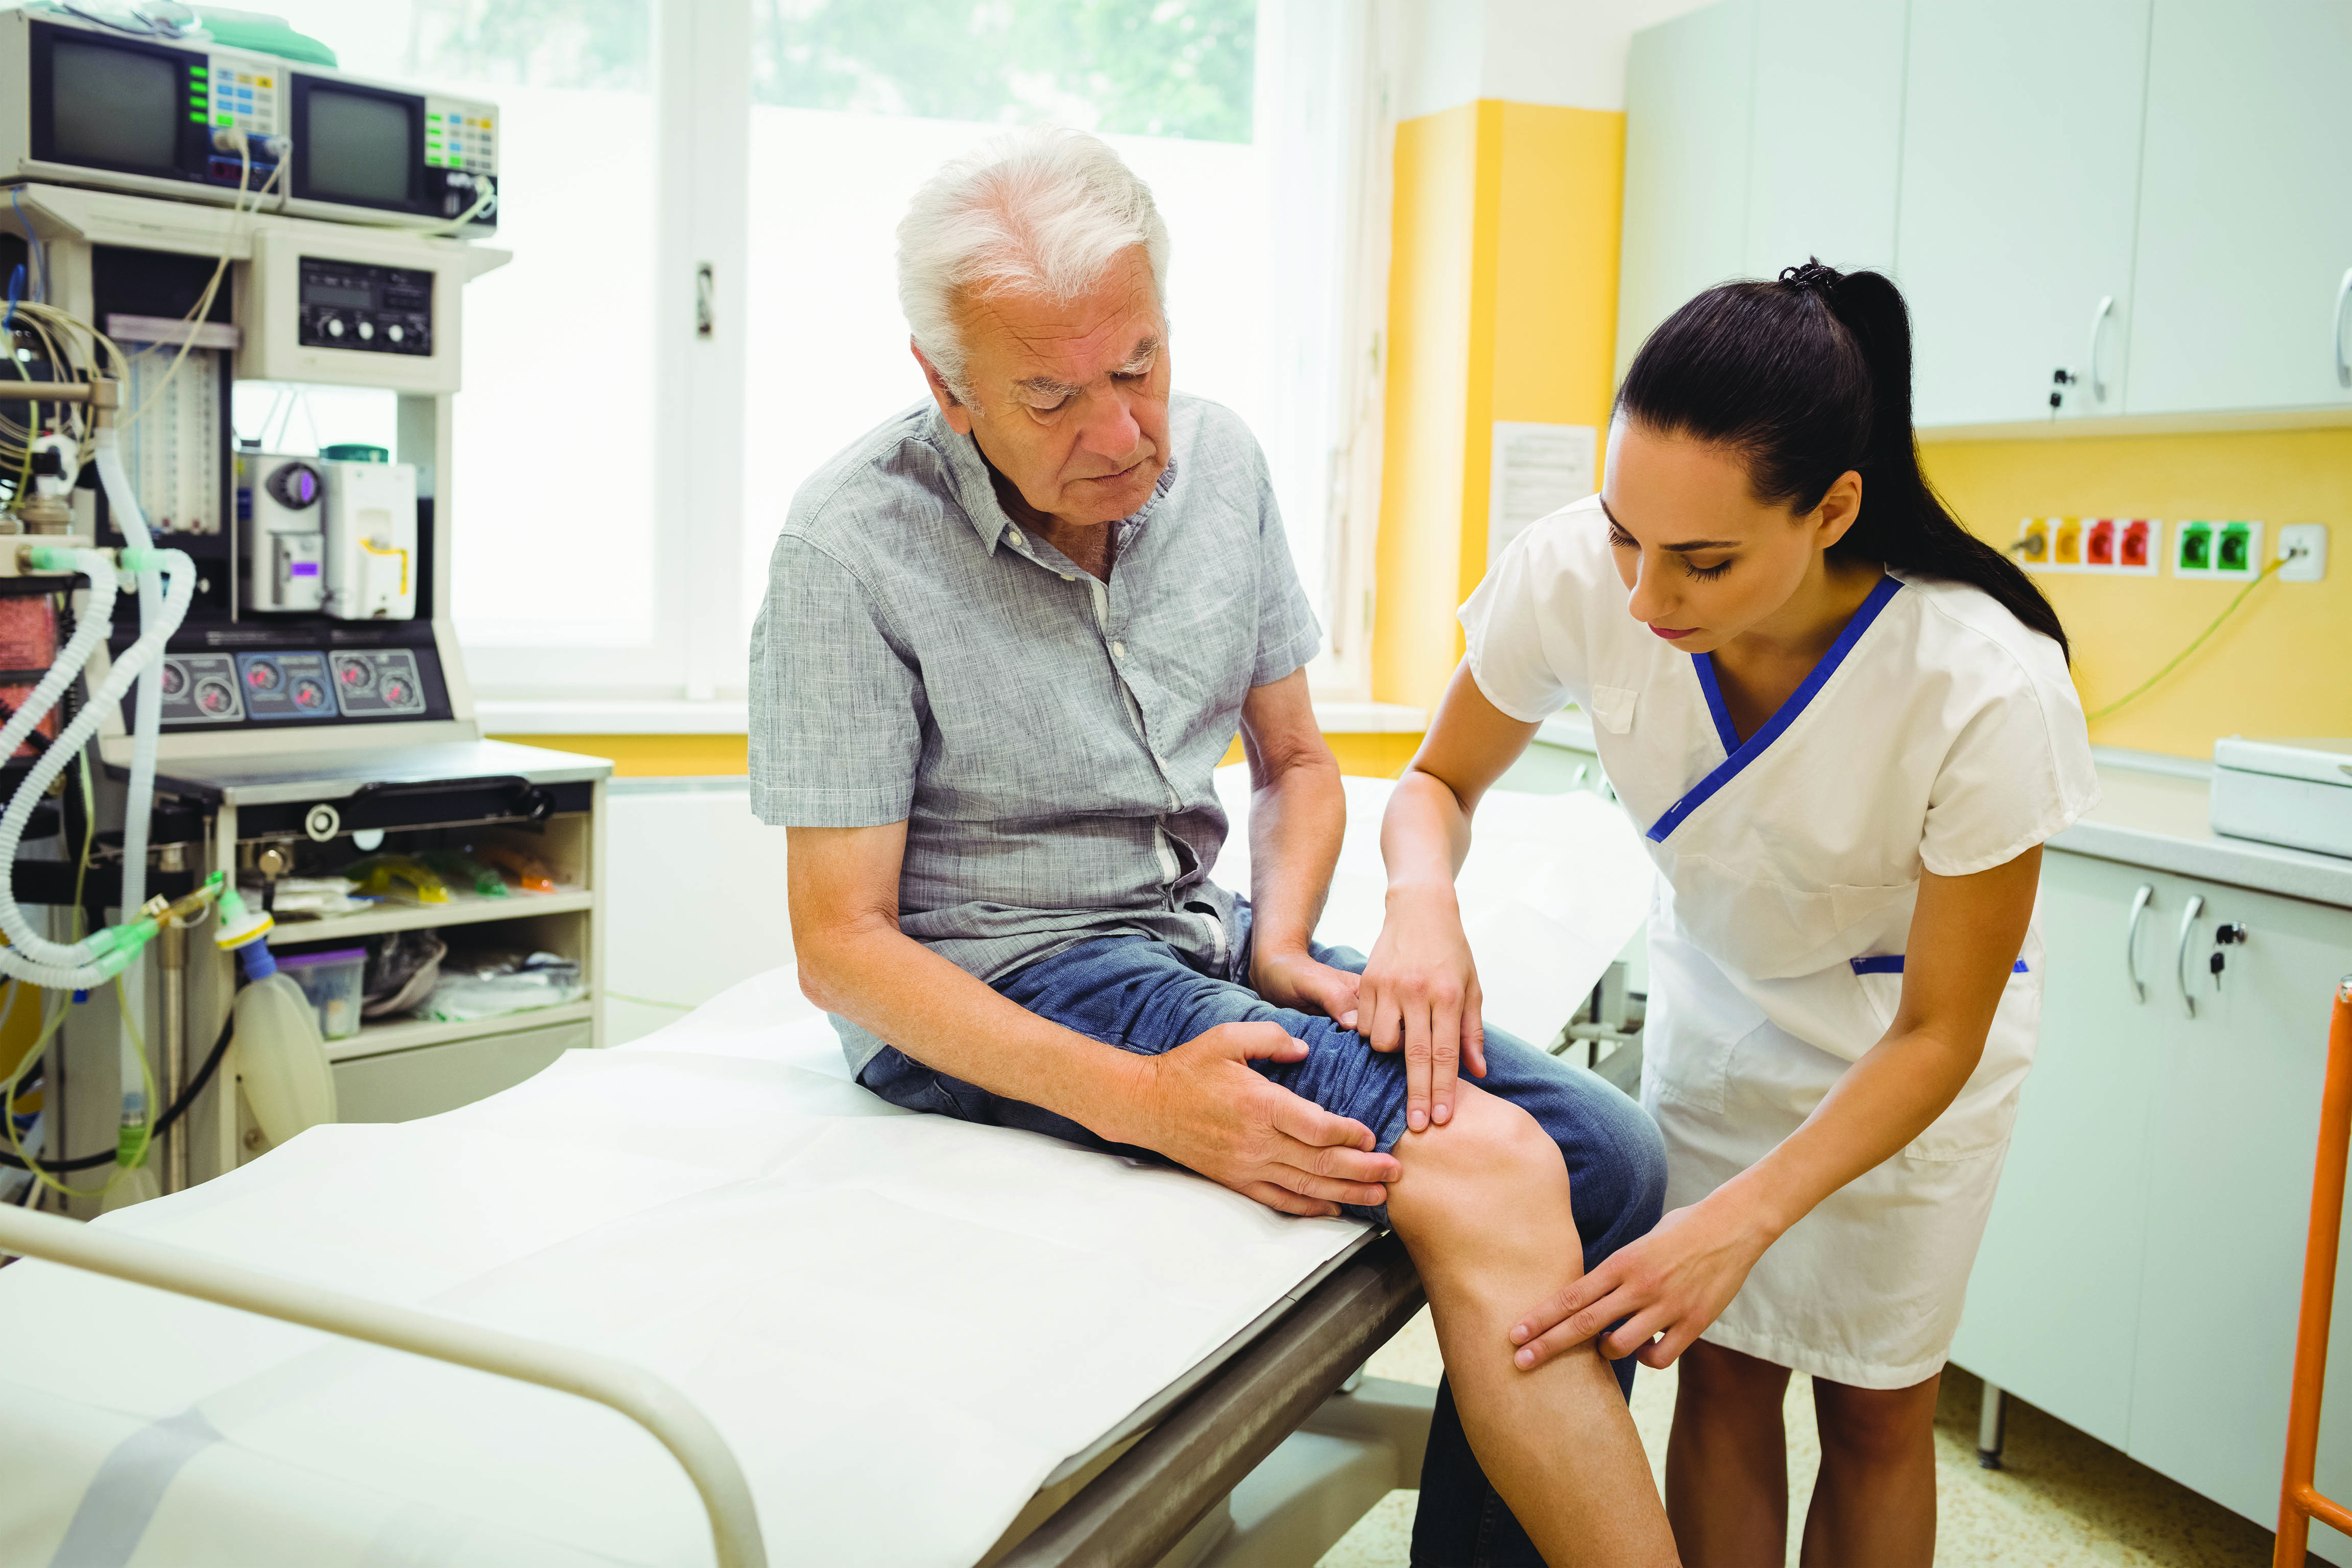 Clinician checks patient's knee